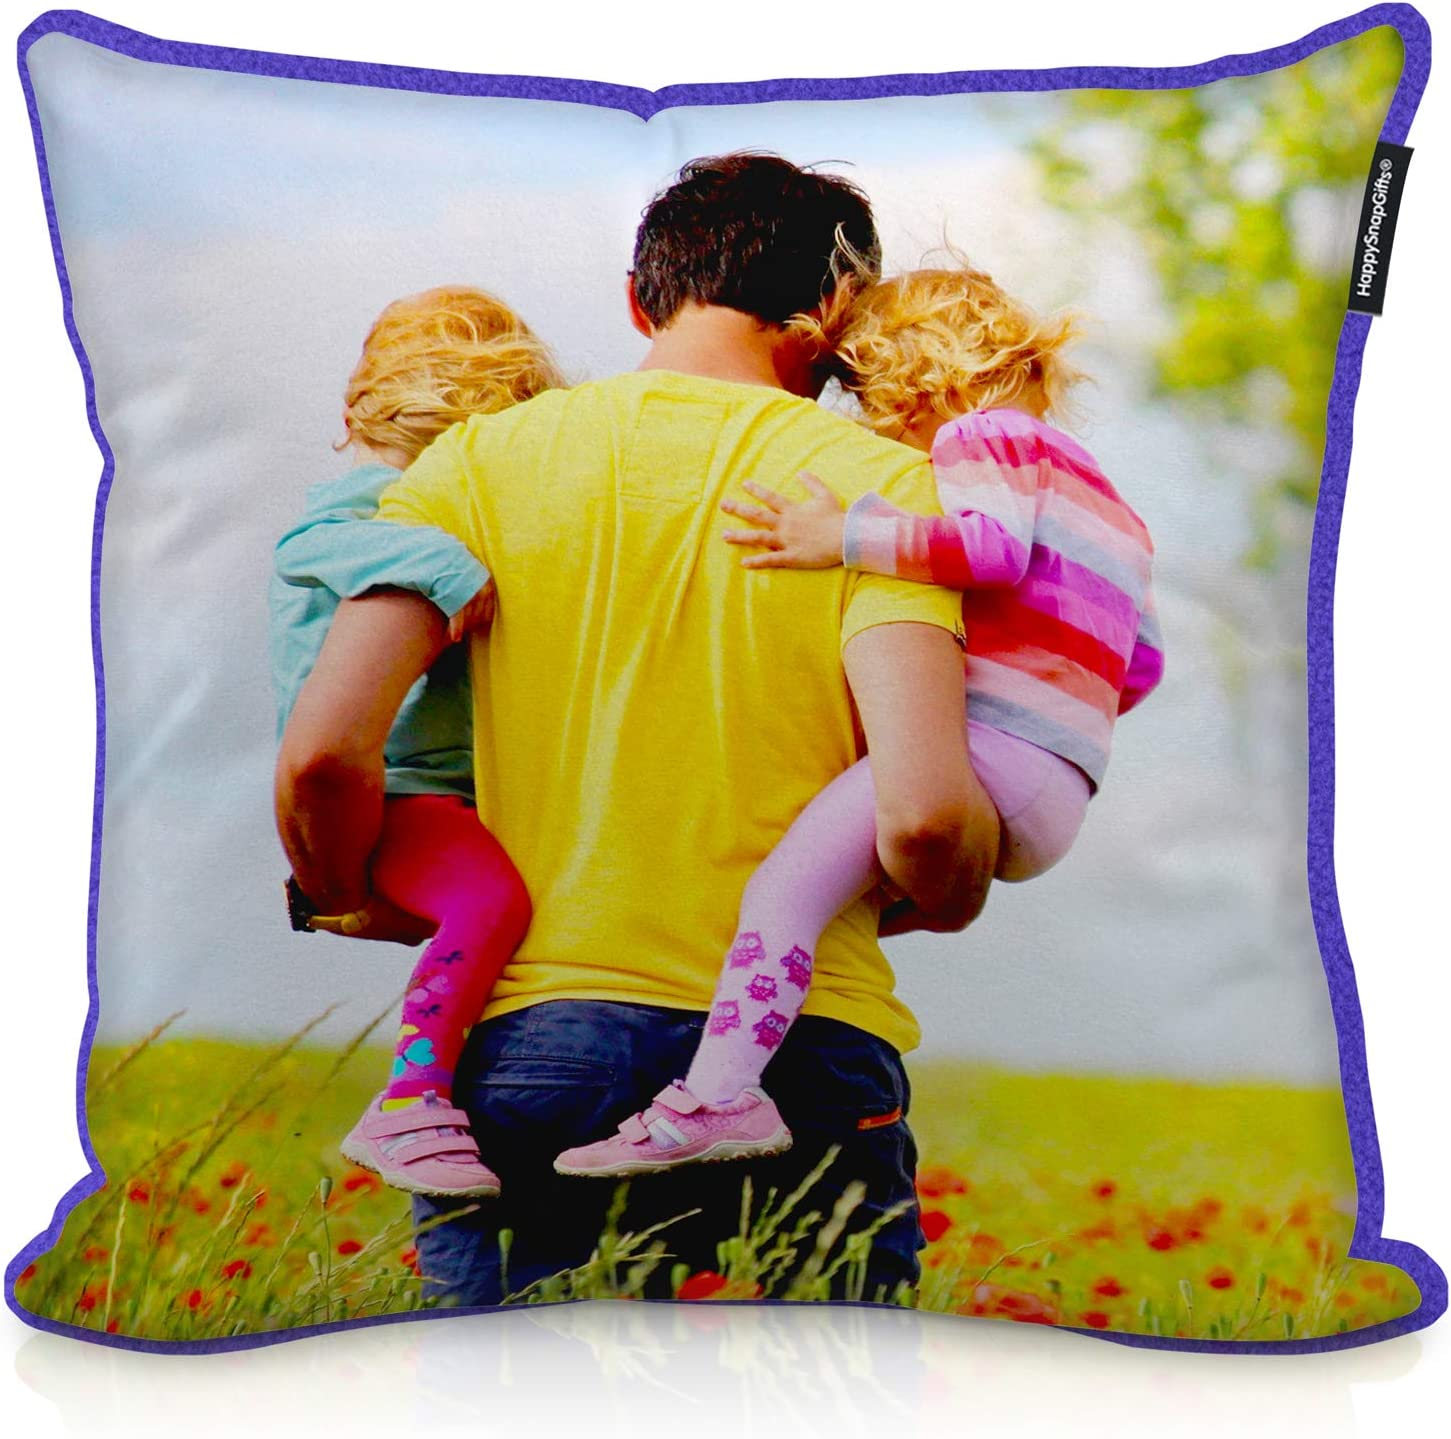 HappySnapGifts Personalised Photo Cushion Featuring Your Photo Cotton Fabric - All Natural, Square 25cm x 25cm